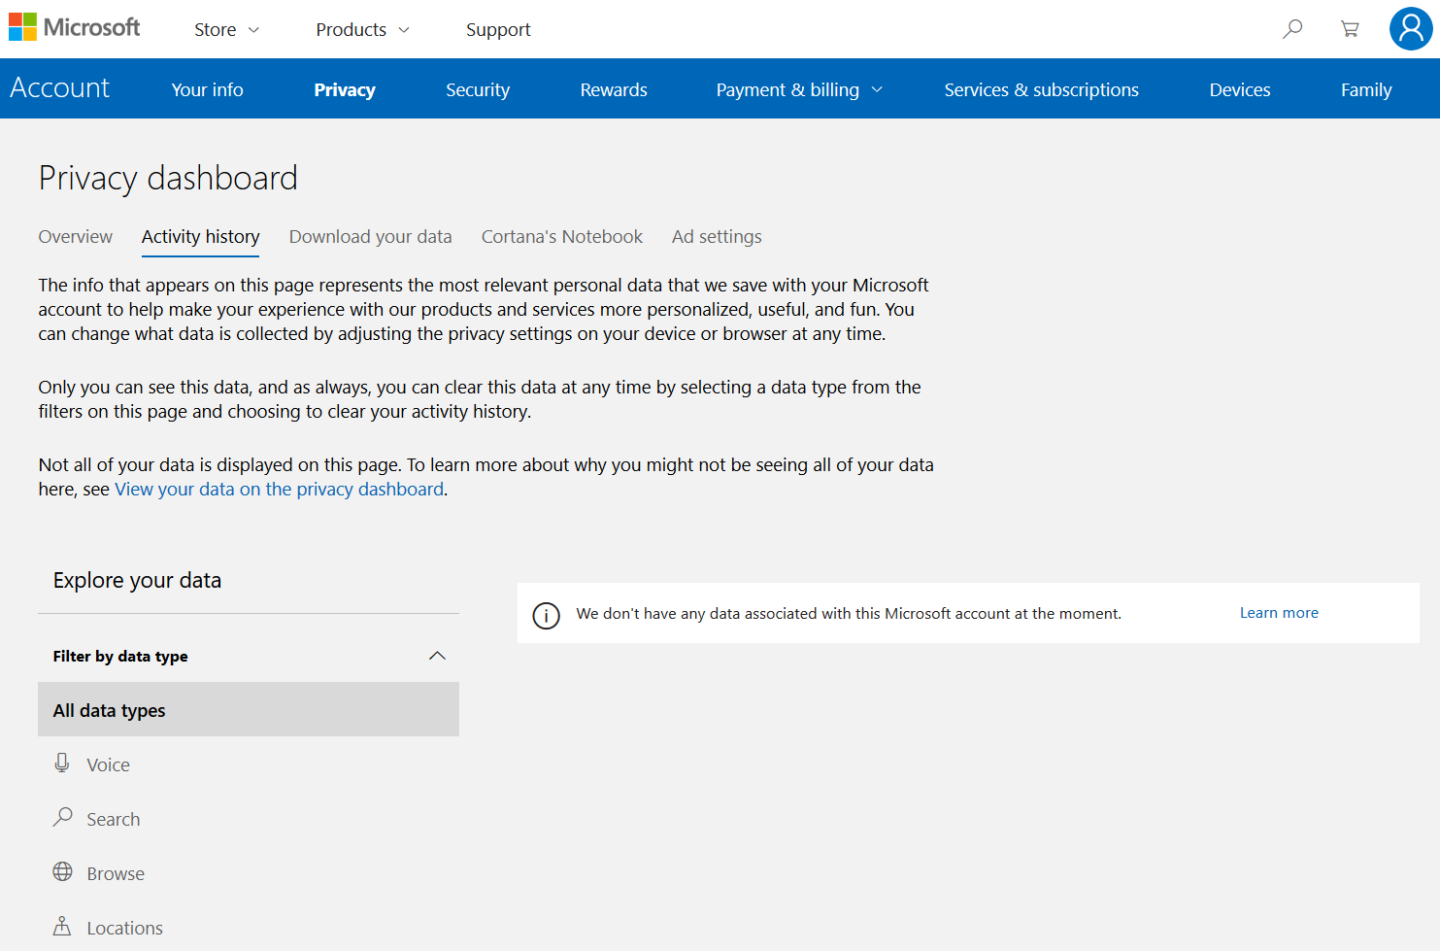 The privacy dashboard allows Windows users to view and delete their activity history.